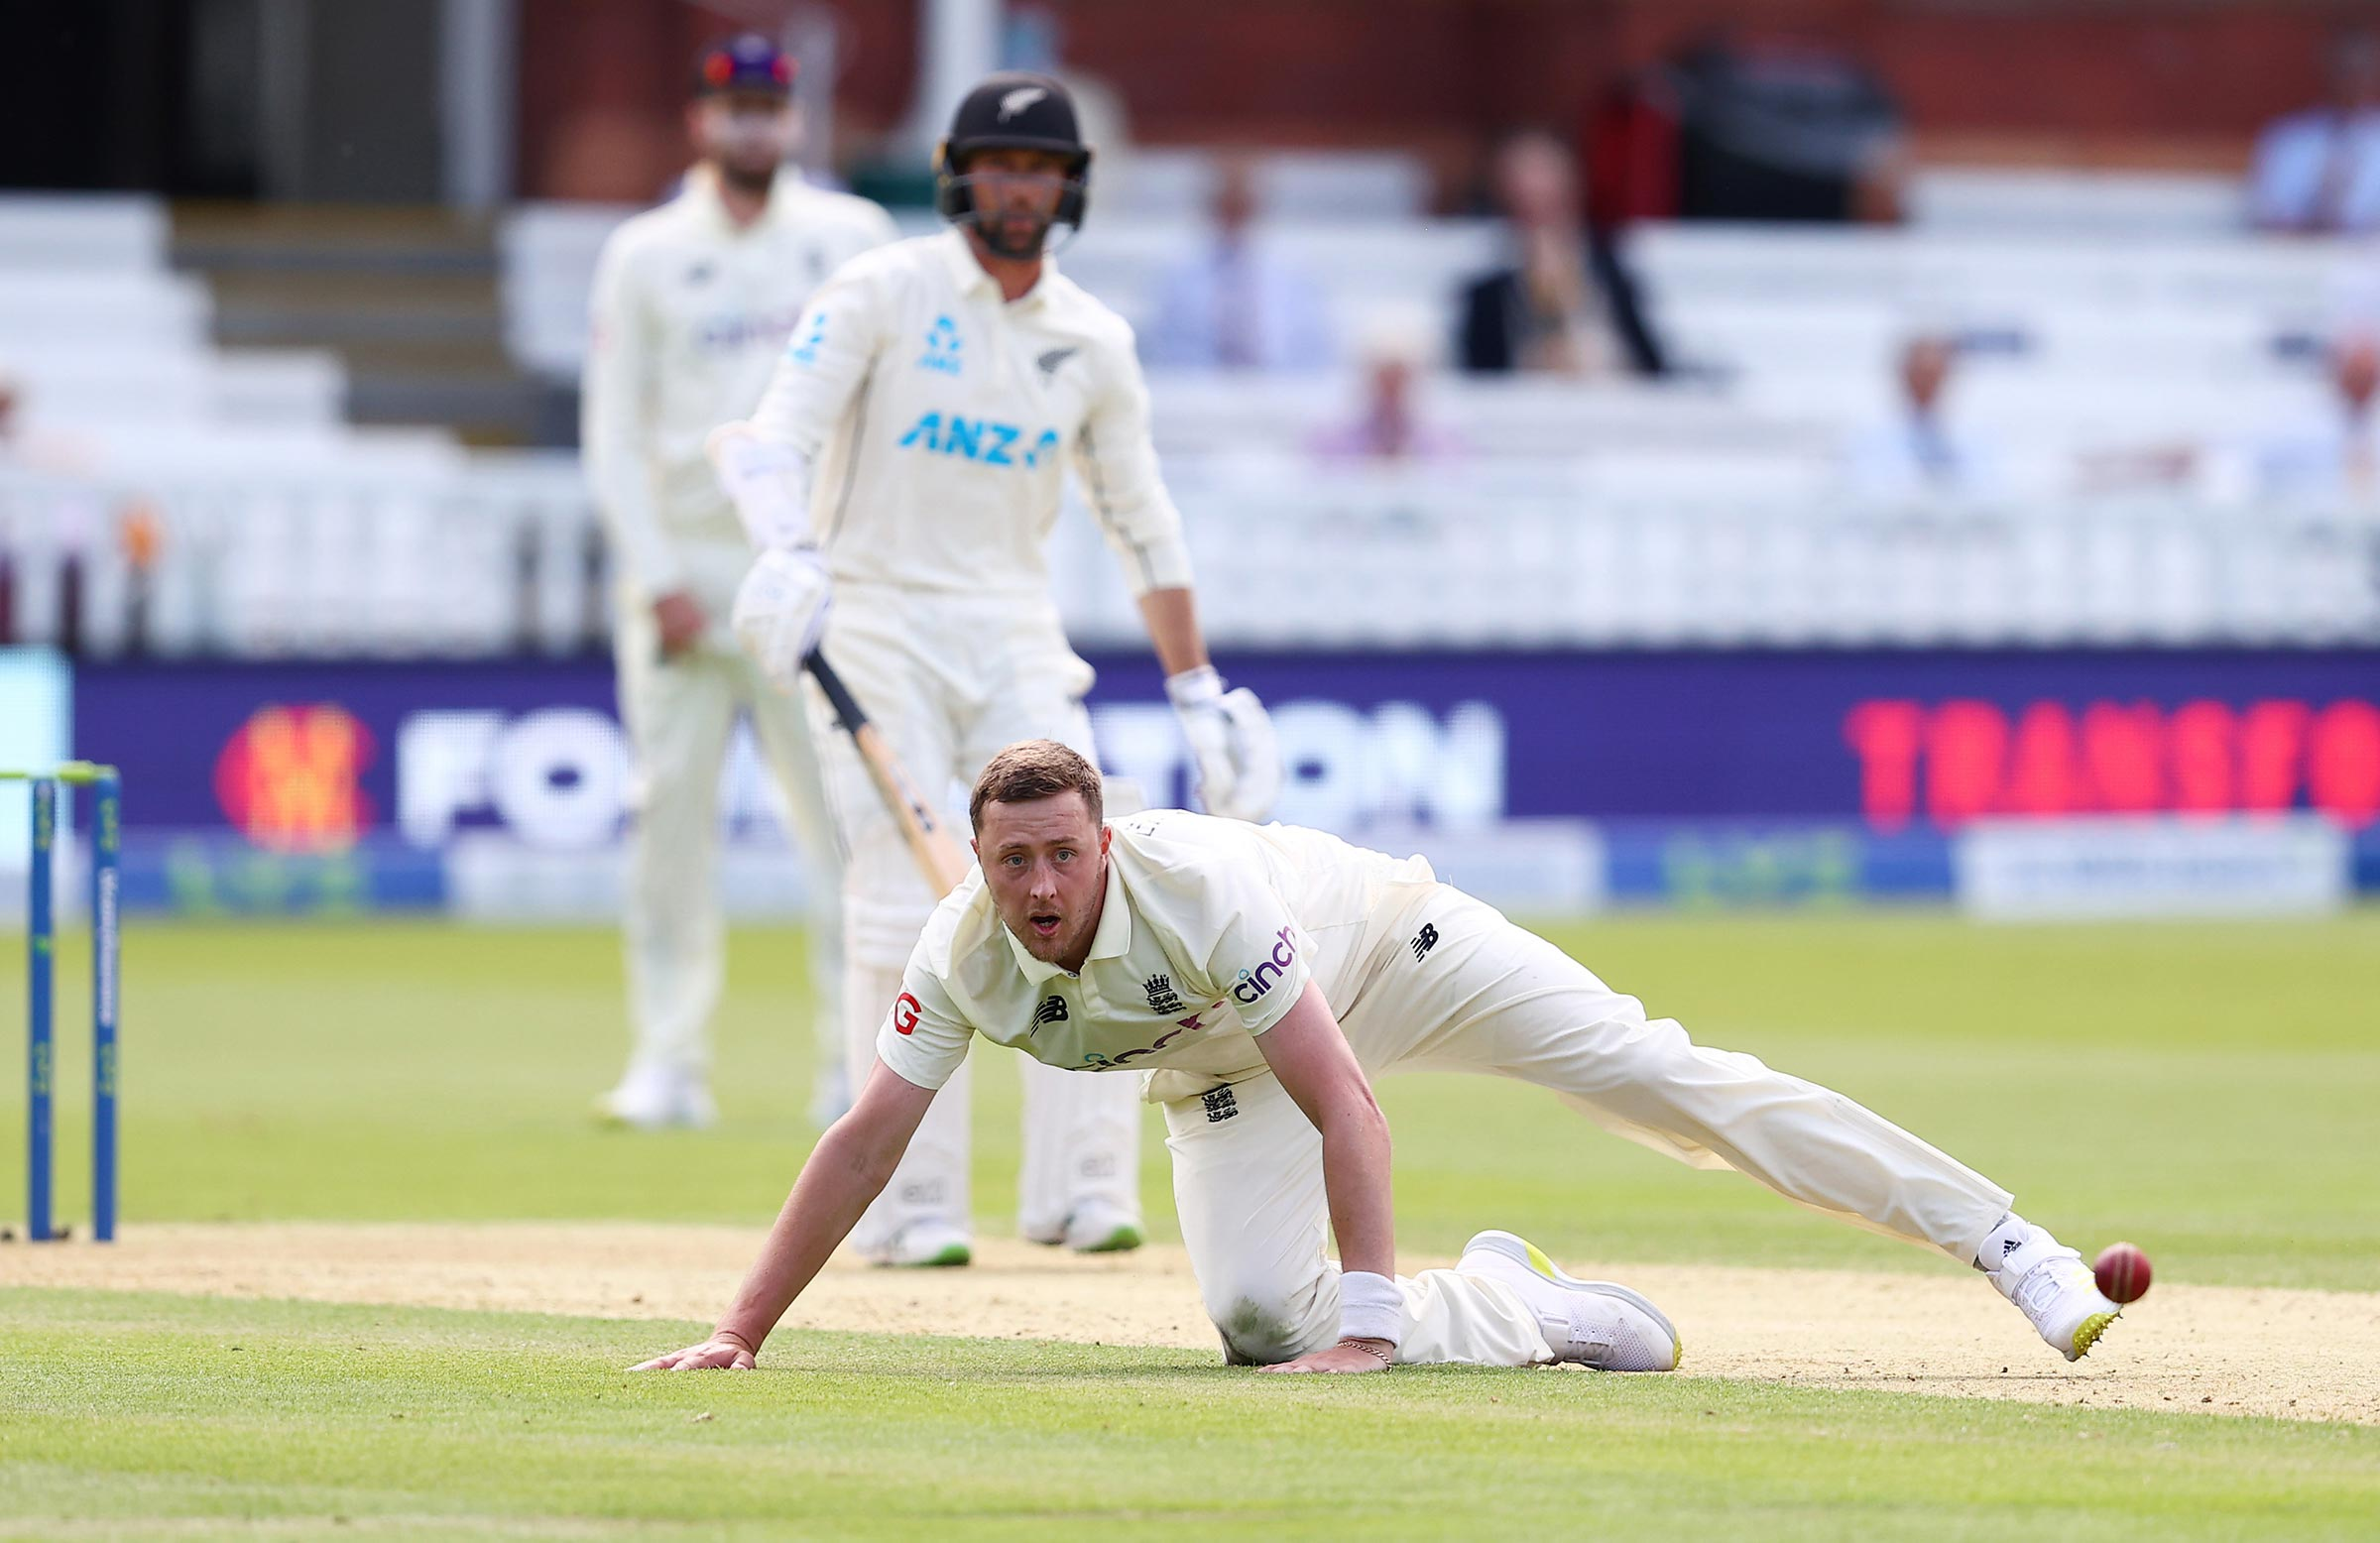 The tweets surfaced online while Robinson was on the field at Lord's // Getty